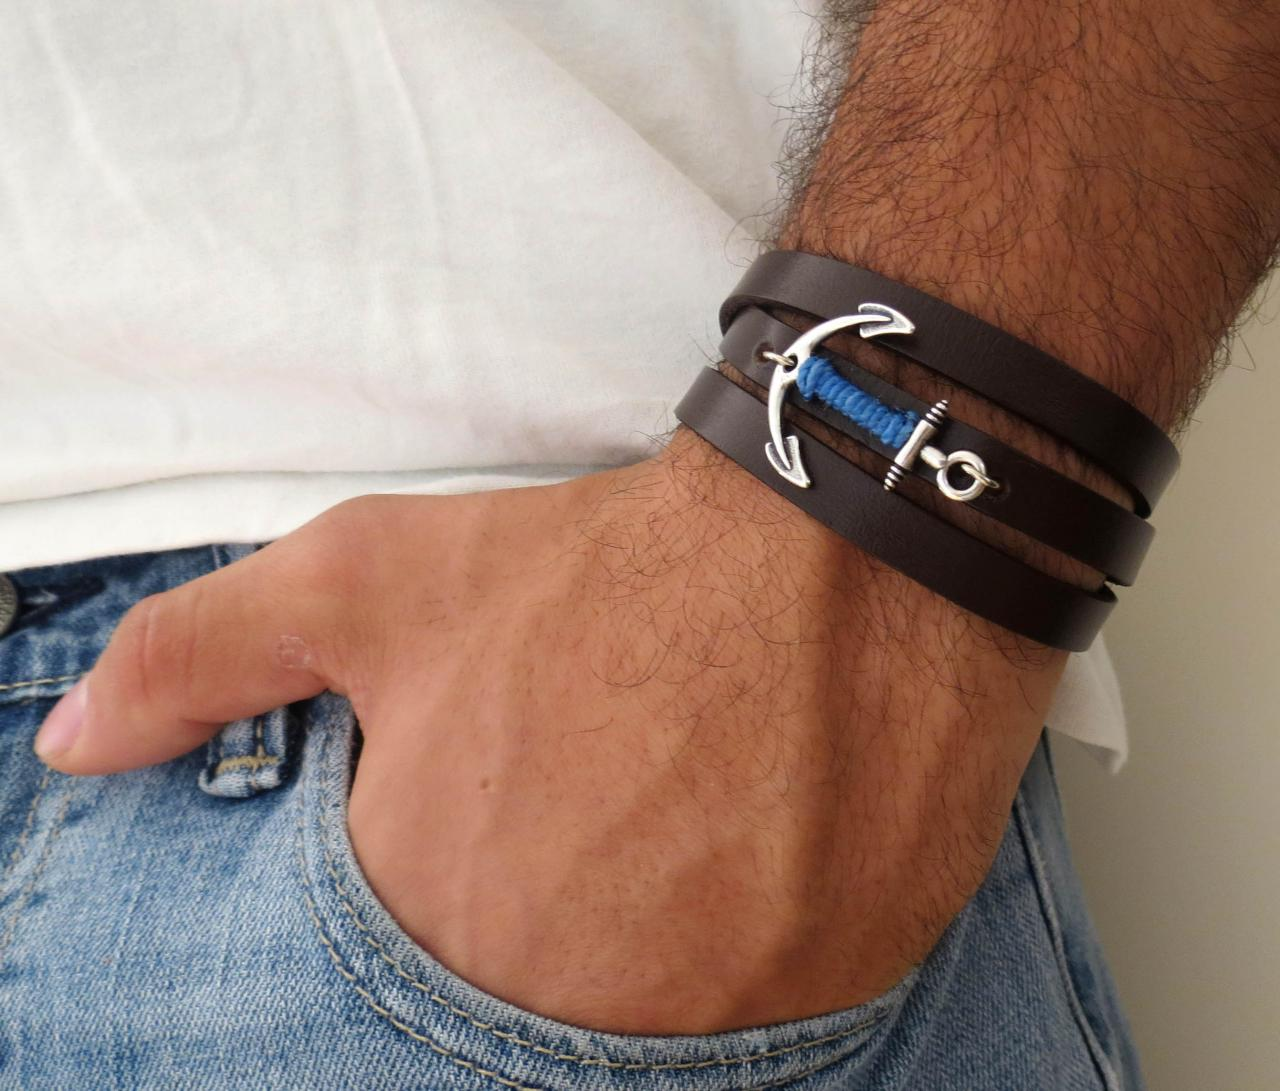 Men's Bracelet - Men's Anchor Bracelet - Men's Leather Bracelet - Men's Brown Bracelet - Mens Jewelry - Jewelry For Men - Gift for Him